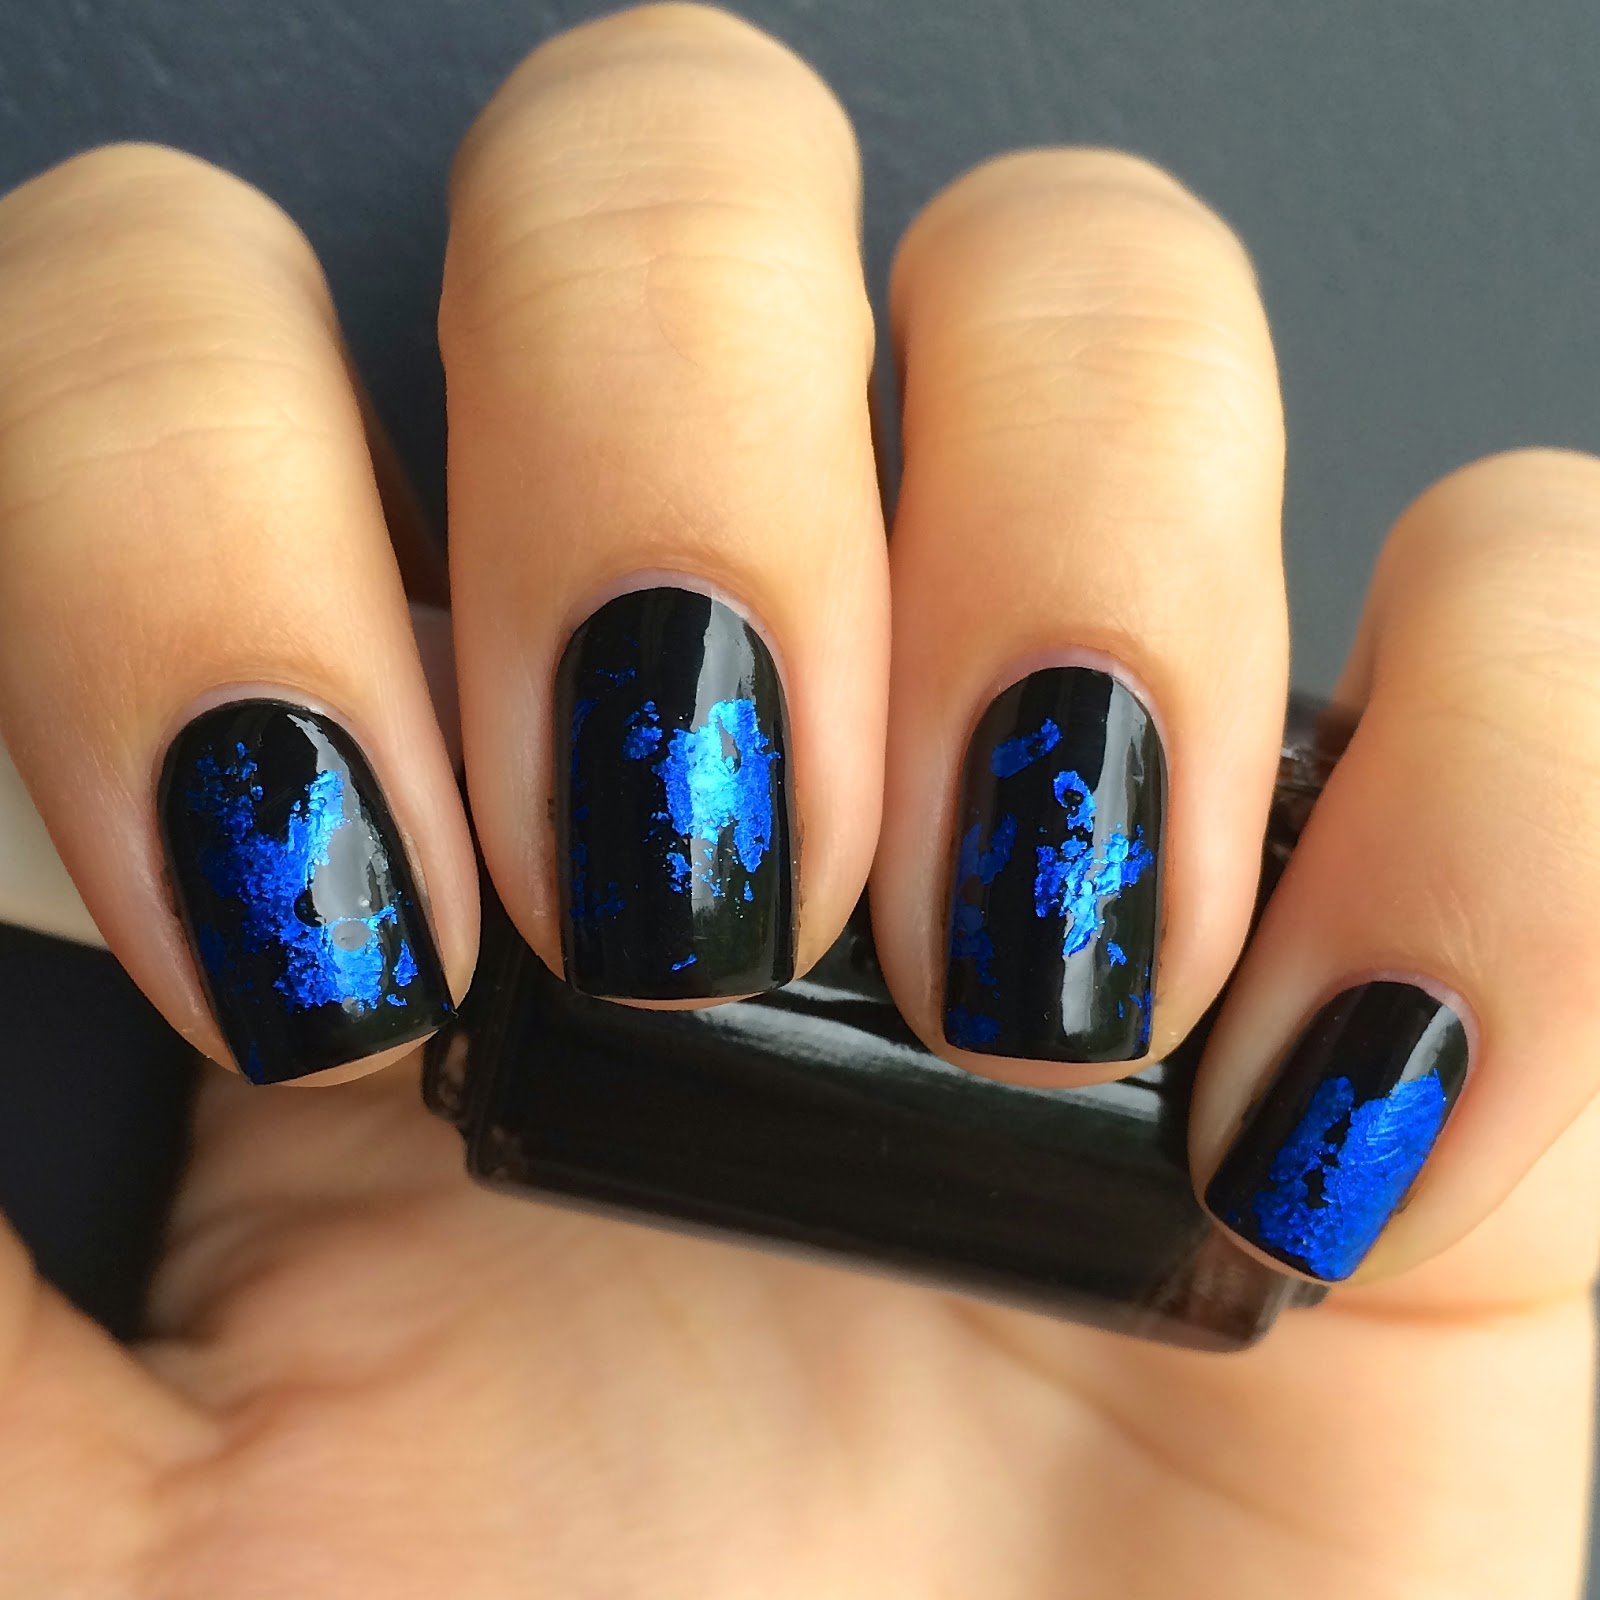 Nails Always Polished: Nail Foil